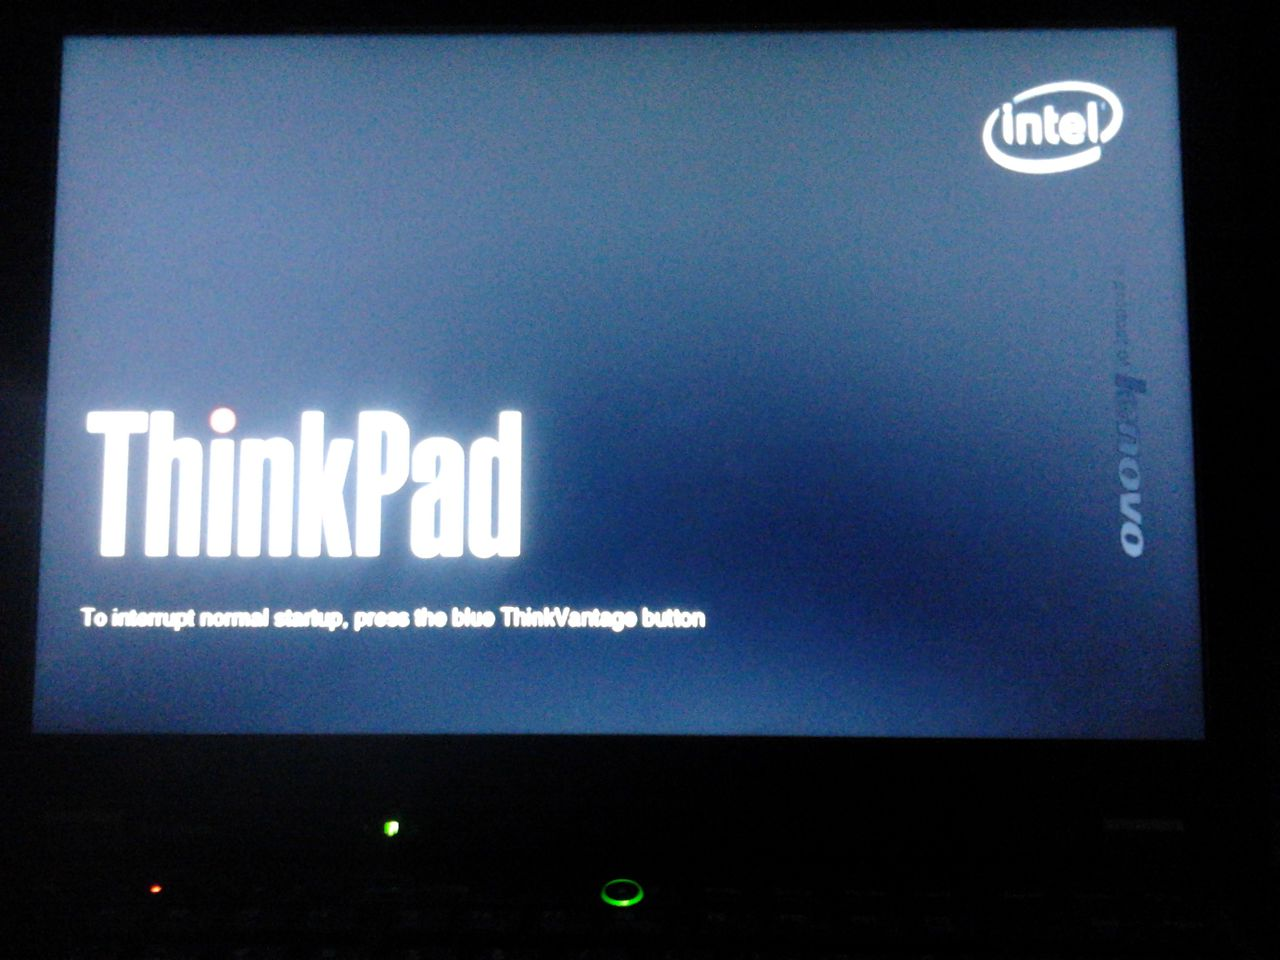 How-to update BIOS (on Thinkpad with Linux) – Sebalinux Blog